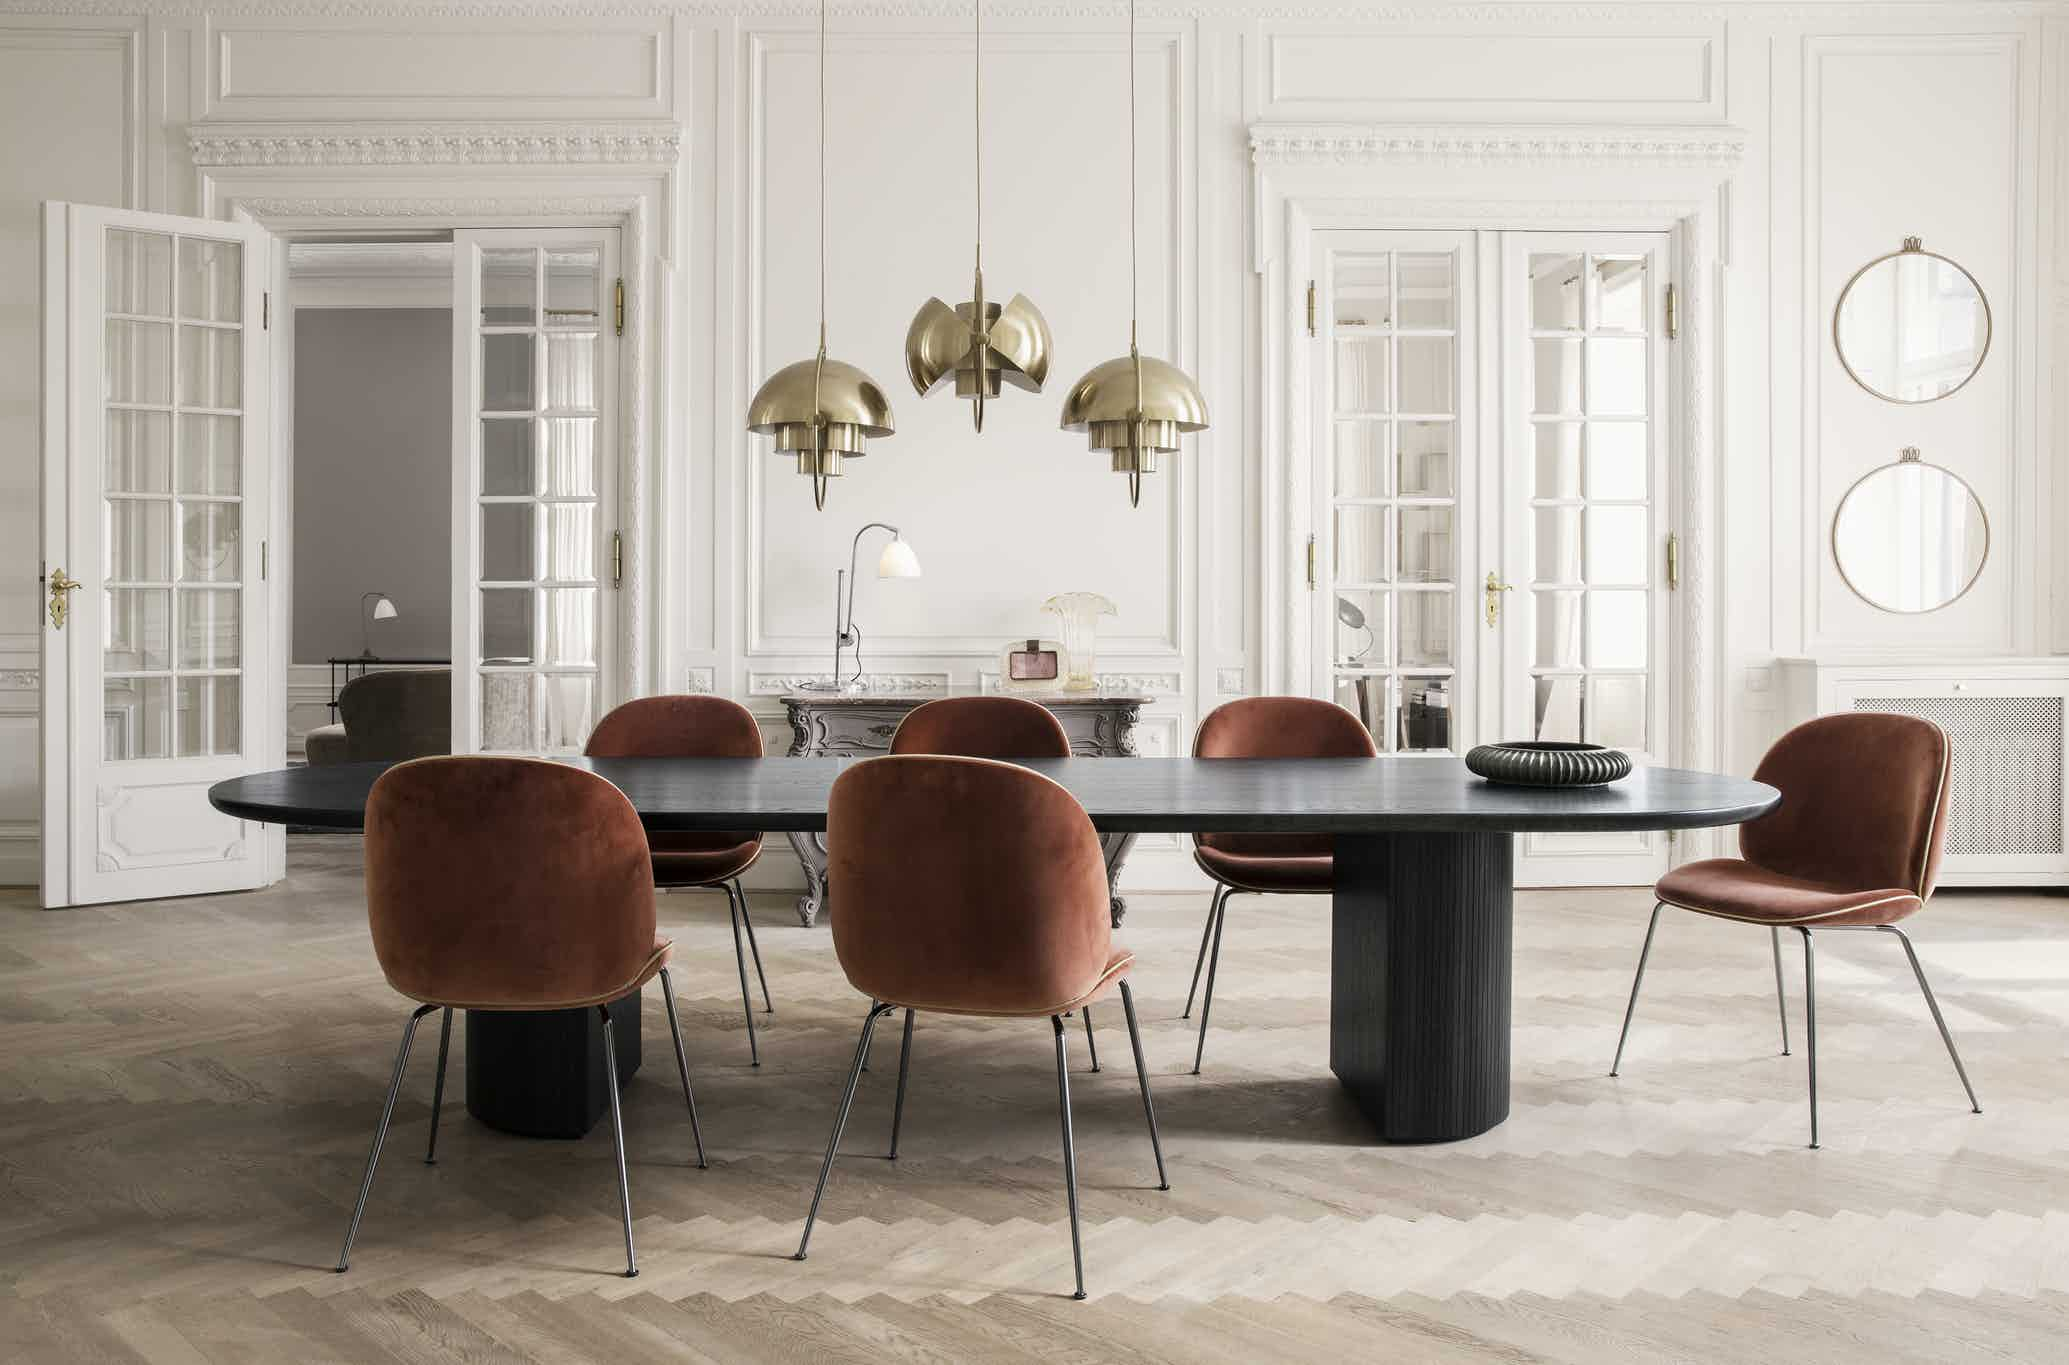 Designed by Space Copenhagen, the classic Moon Dining Table features an interplay between a beautiful solid oak table top and a smooth half or full moon shaped base with bevelled surface.